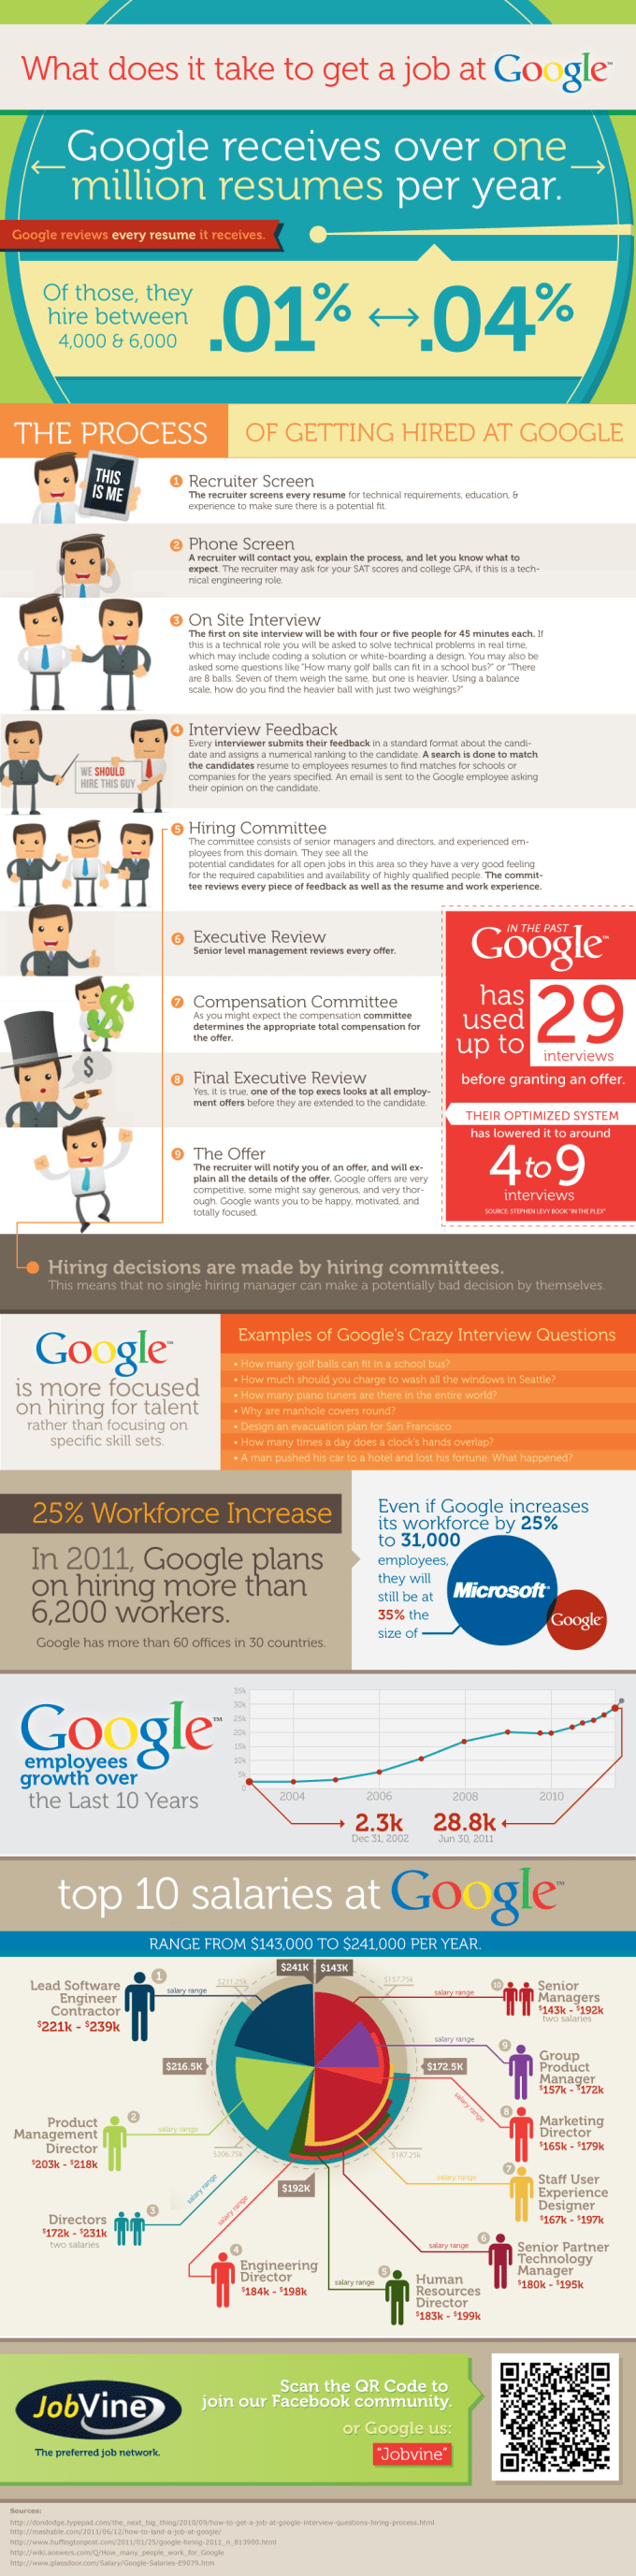 What does it take to get a job at Google